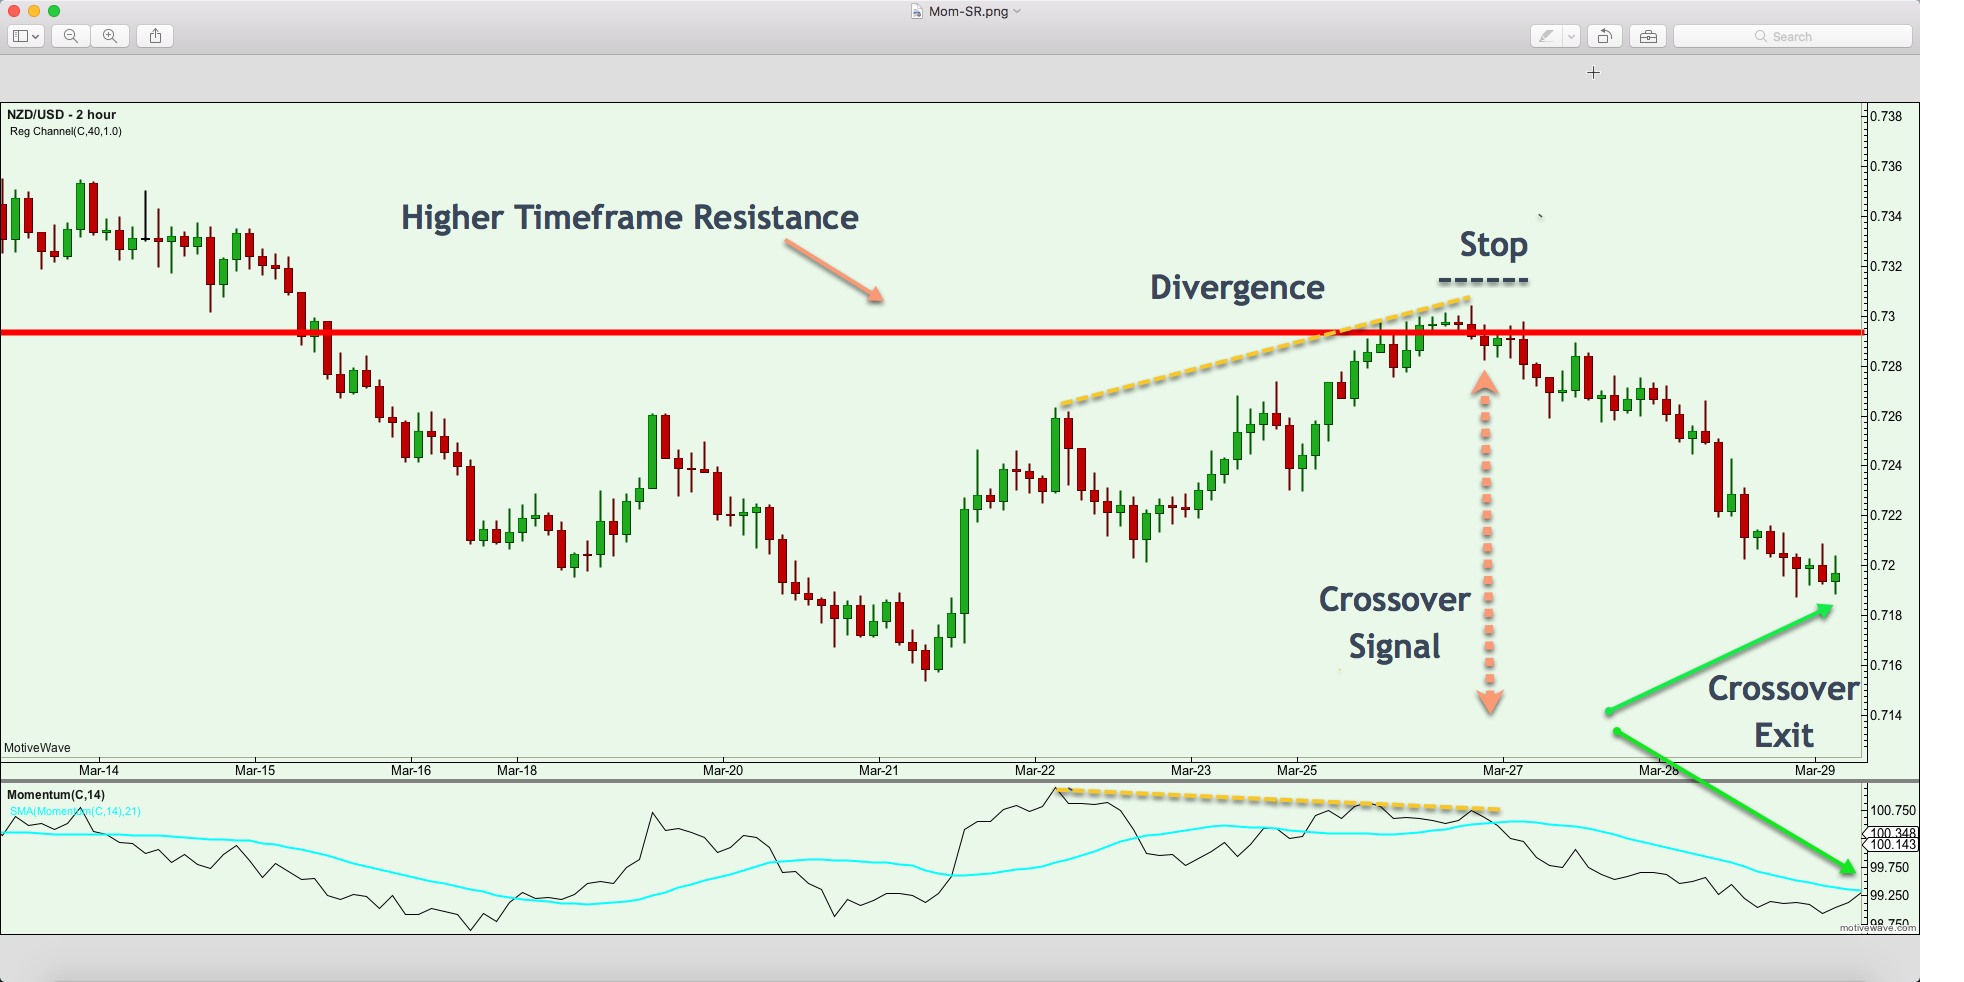 Trading With The Momentum Indicator For Best Results